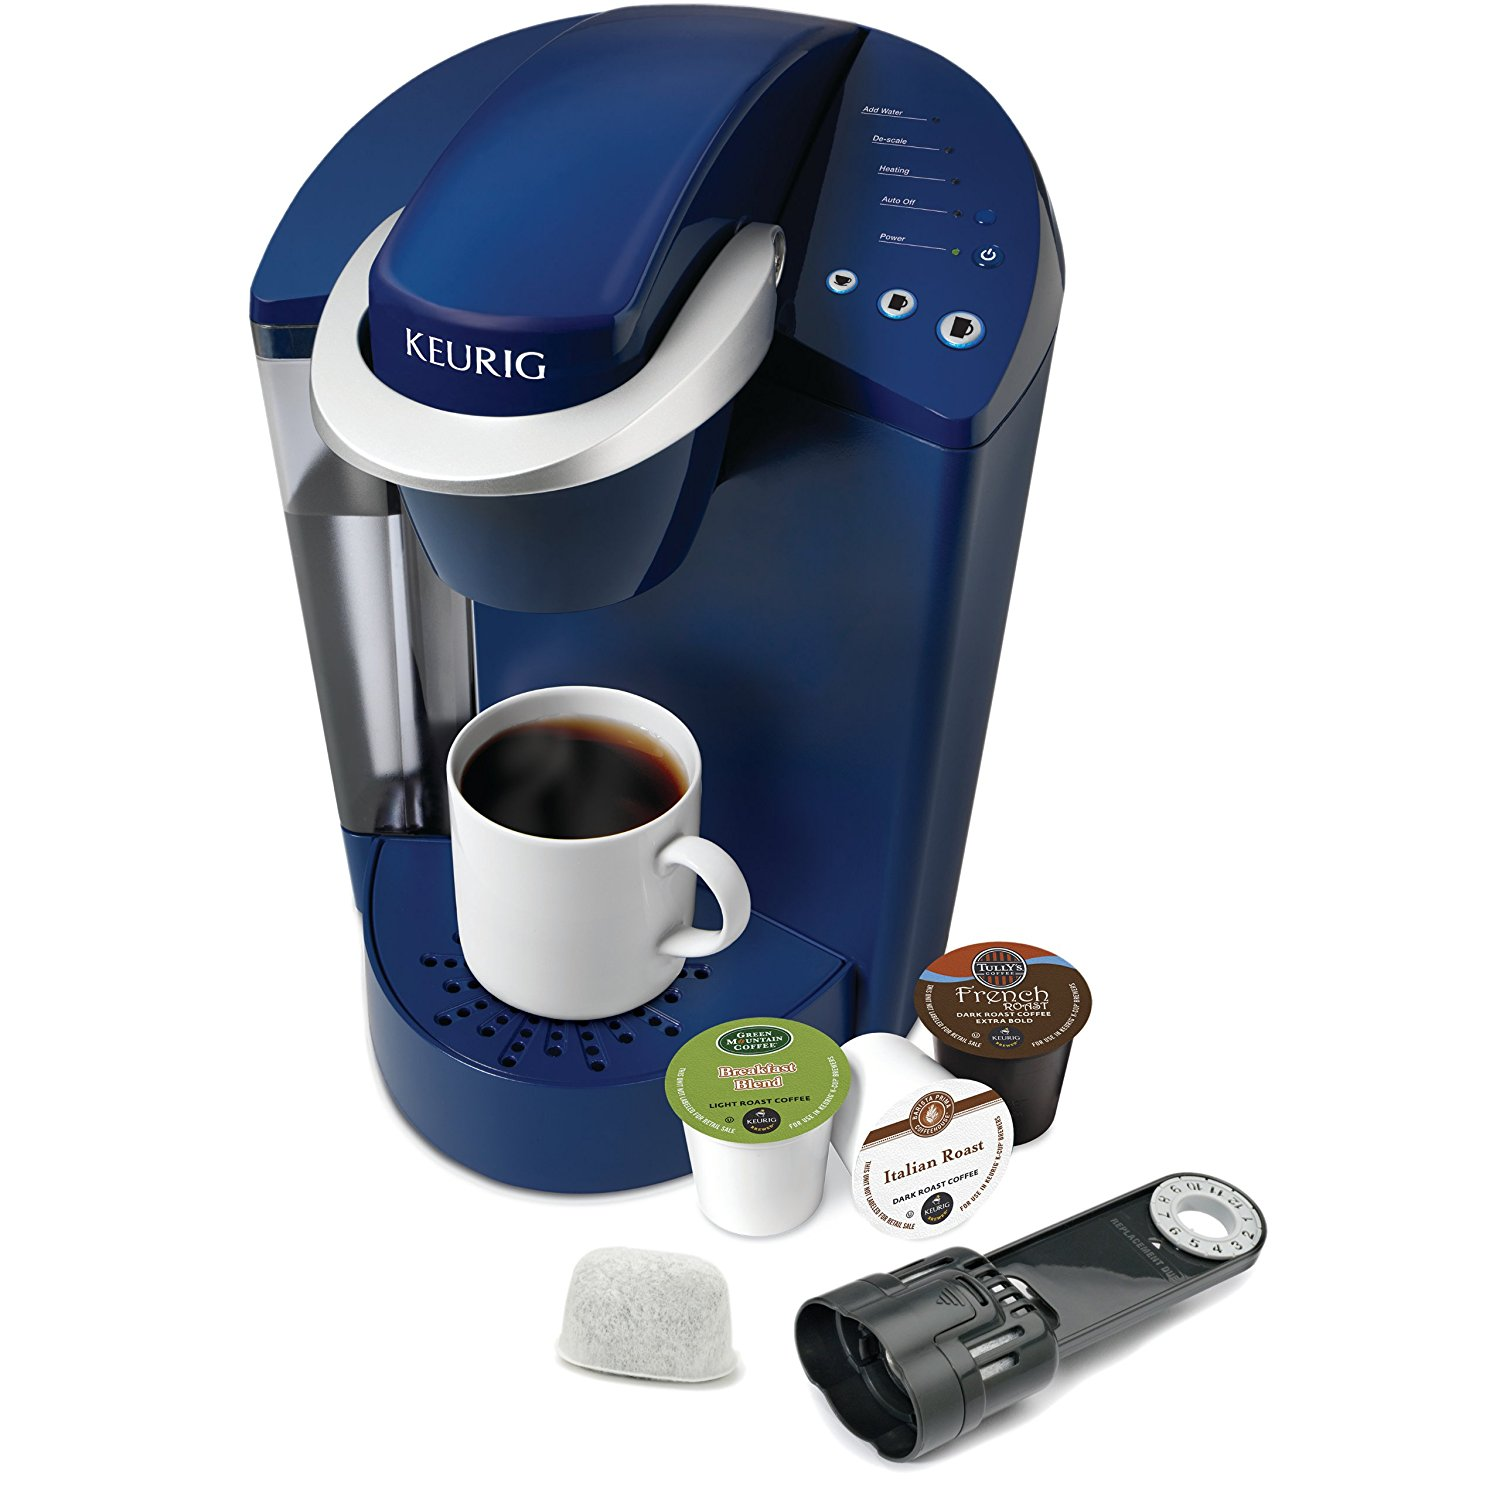 Best keurig coffee makers of 2018 reviews at Coffee maker brands